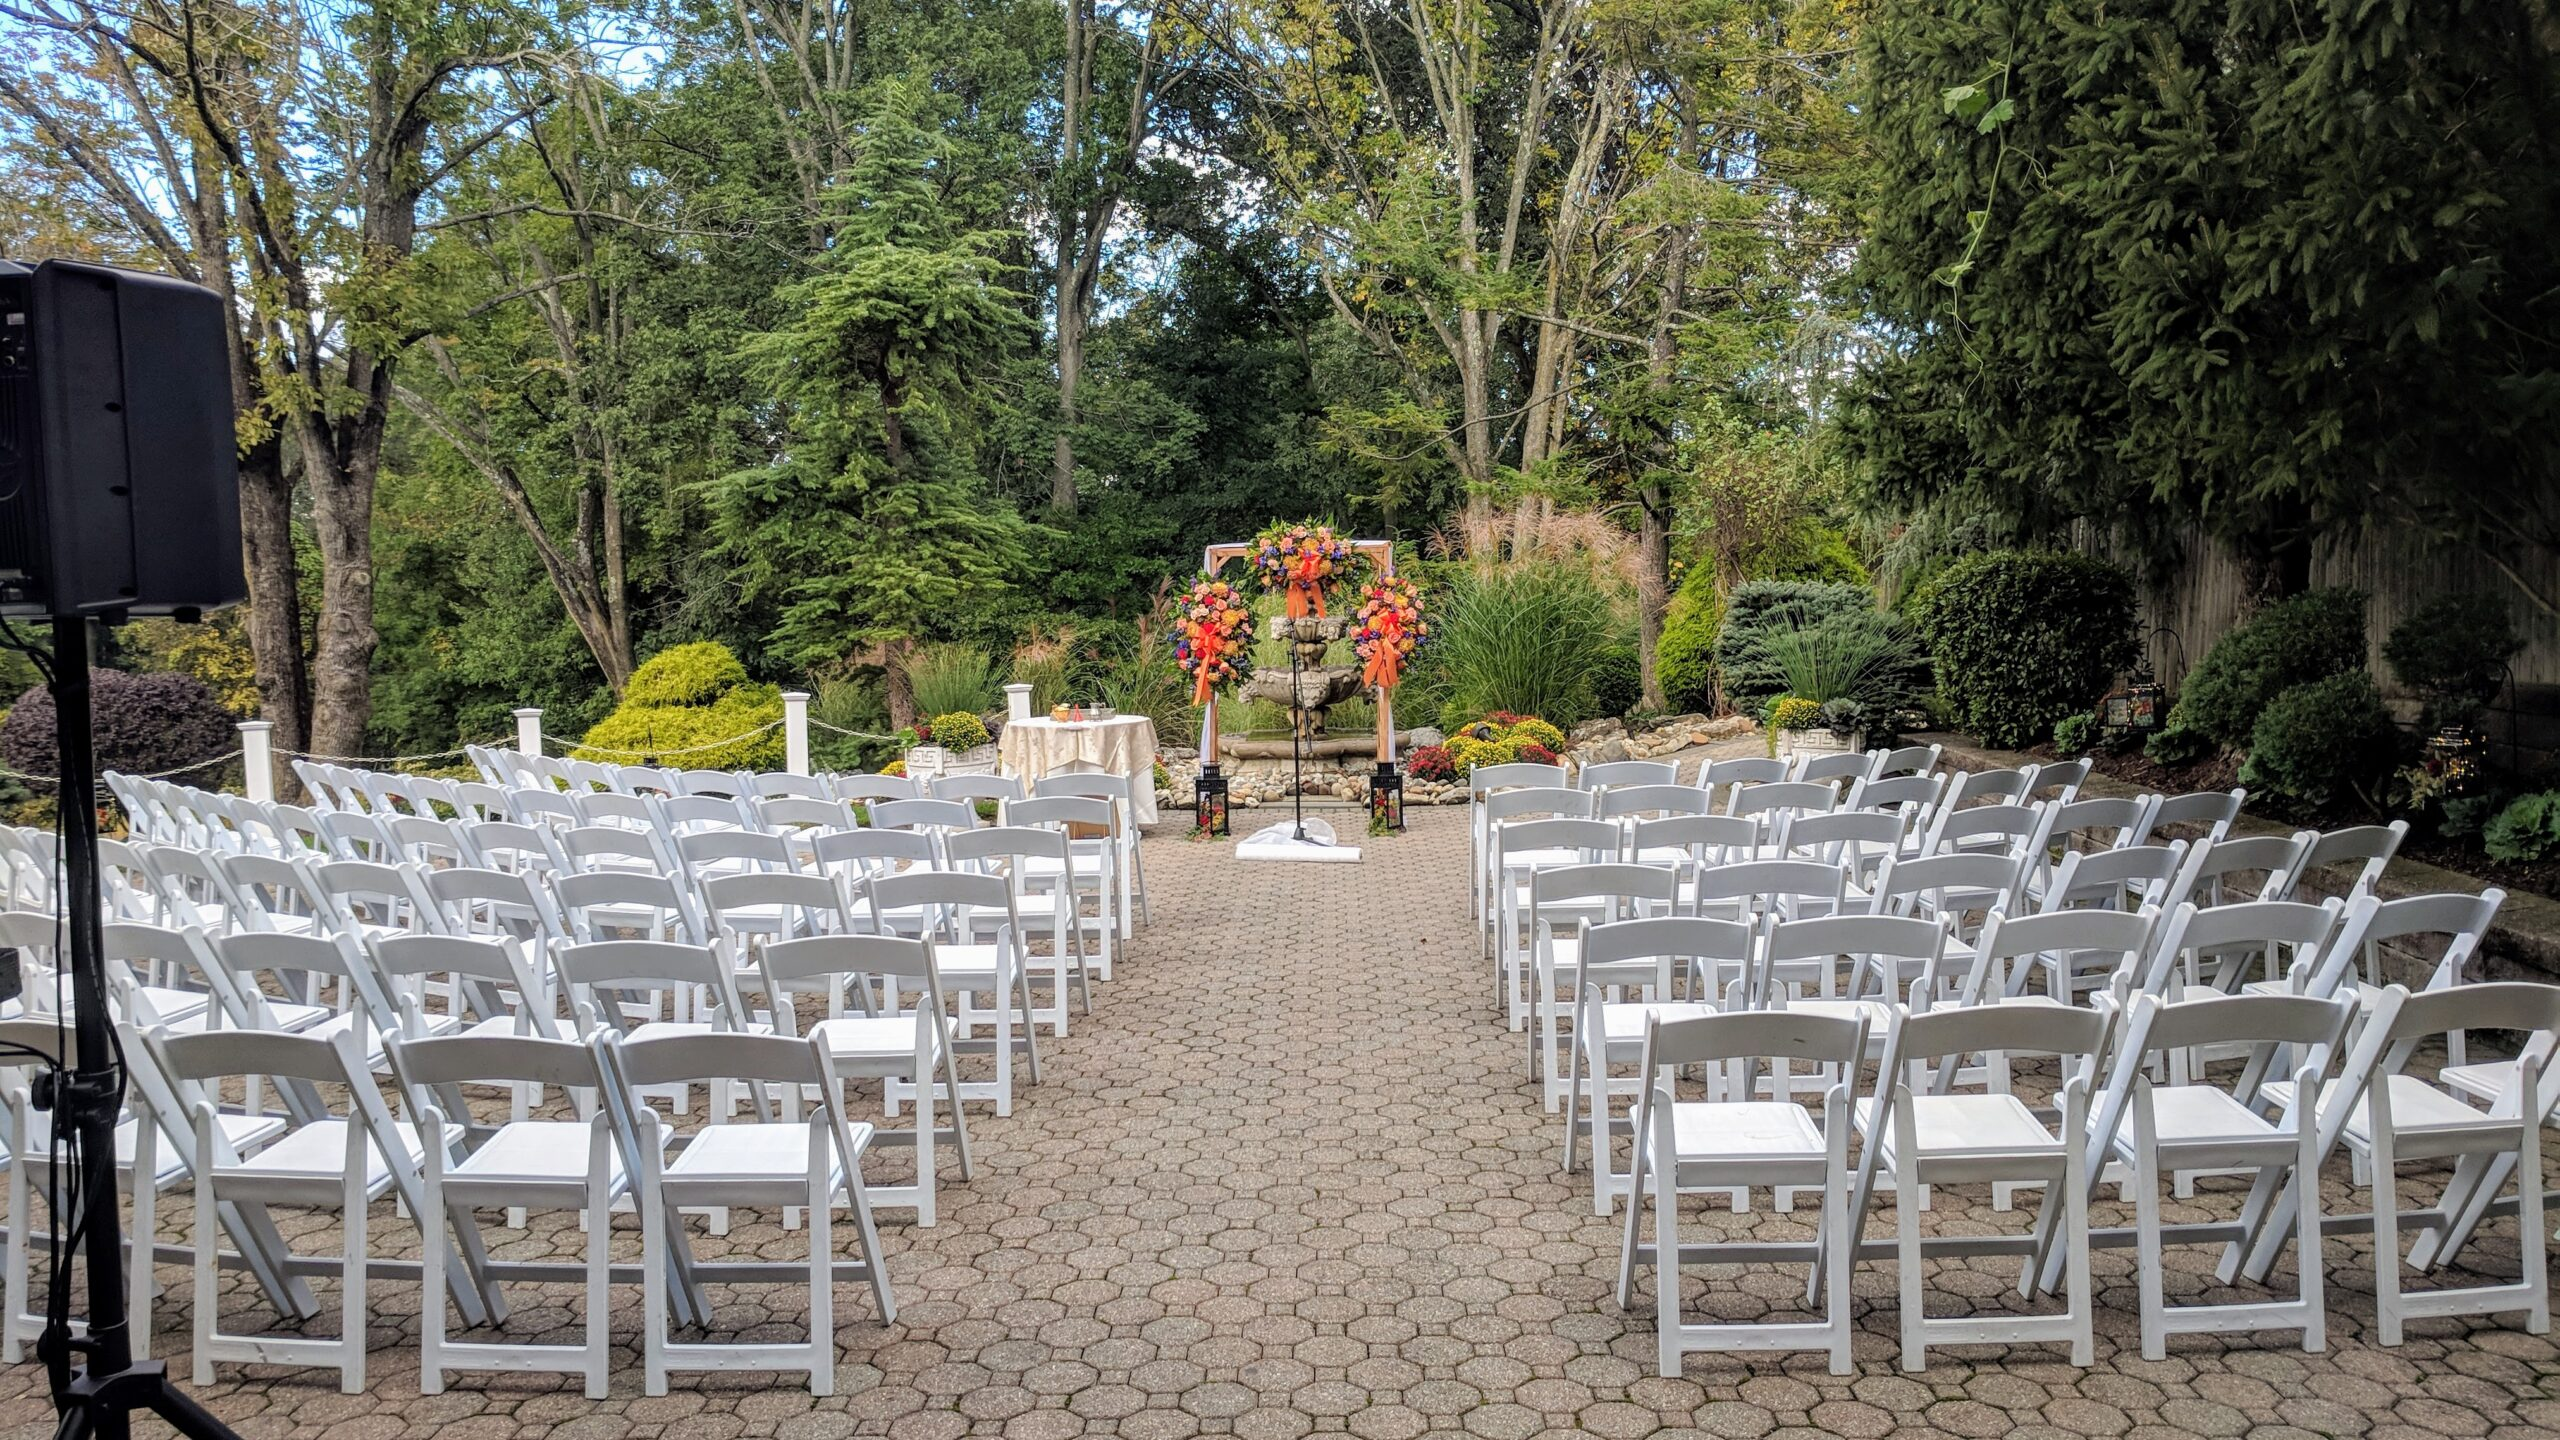 Ceremony seating with white chairs outside for a Fall Wedding at Mayfair Farms NJ